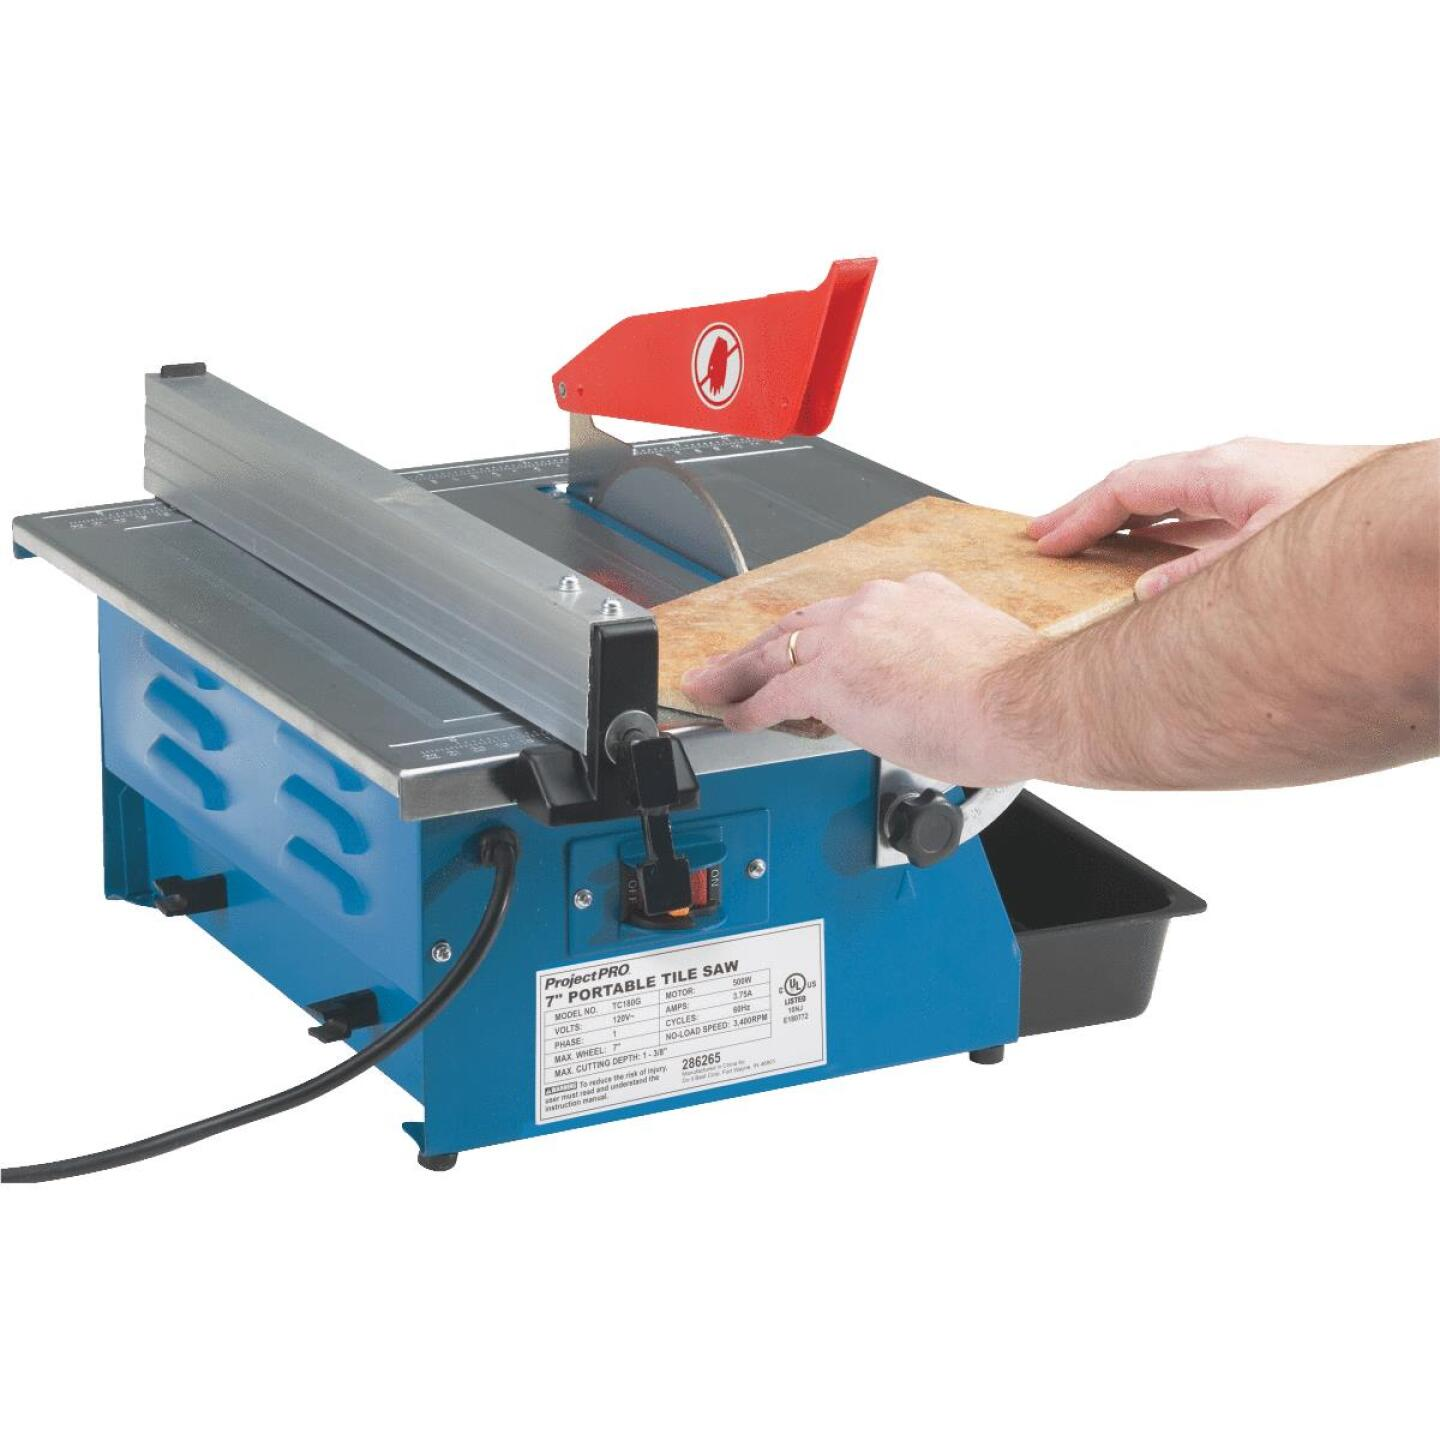 Project Pro 7 In. Portable Tile Saw Image 4